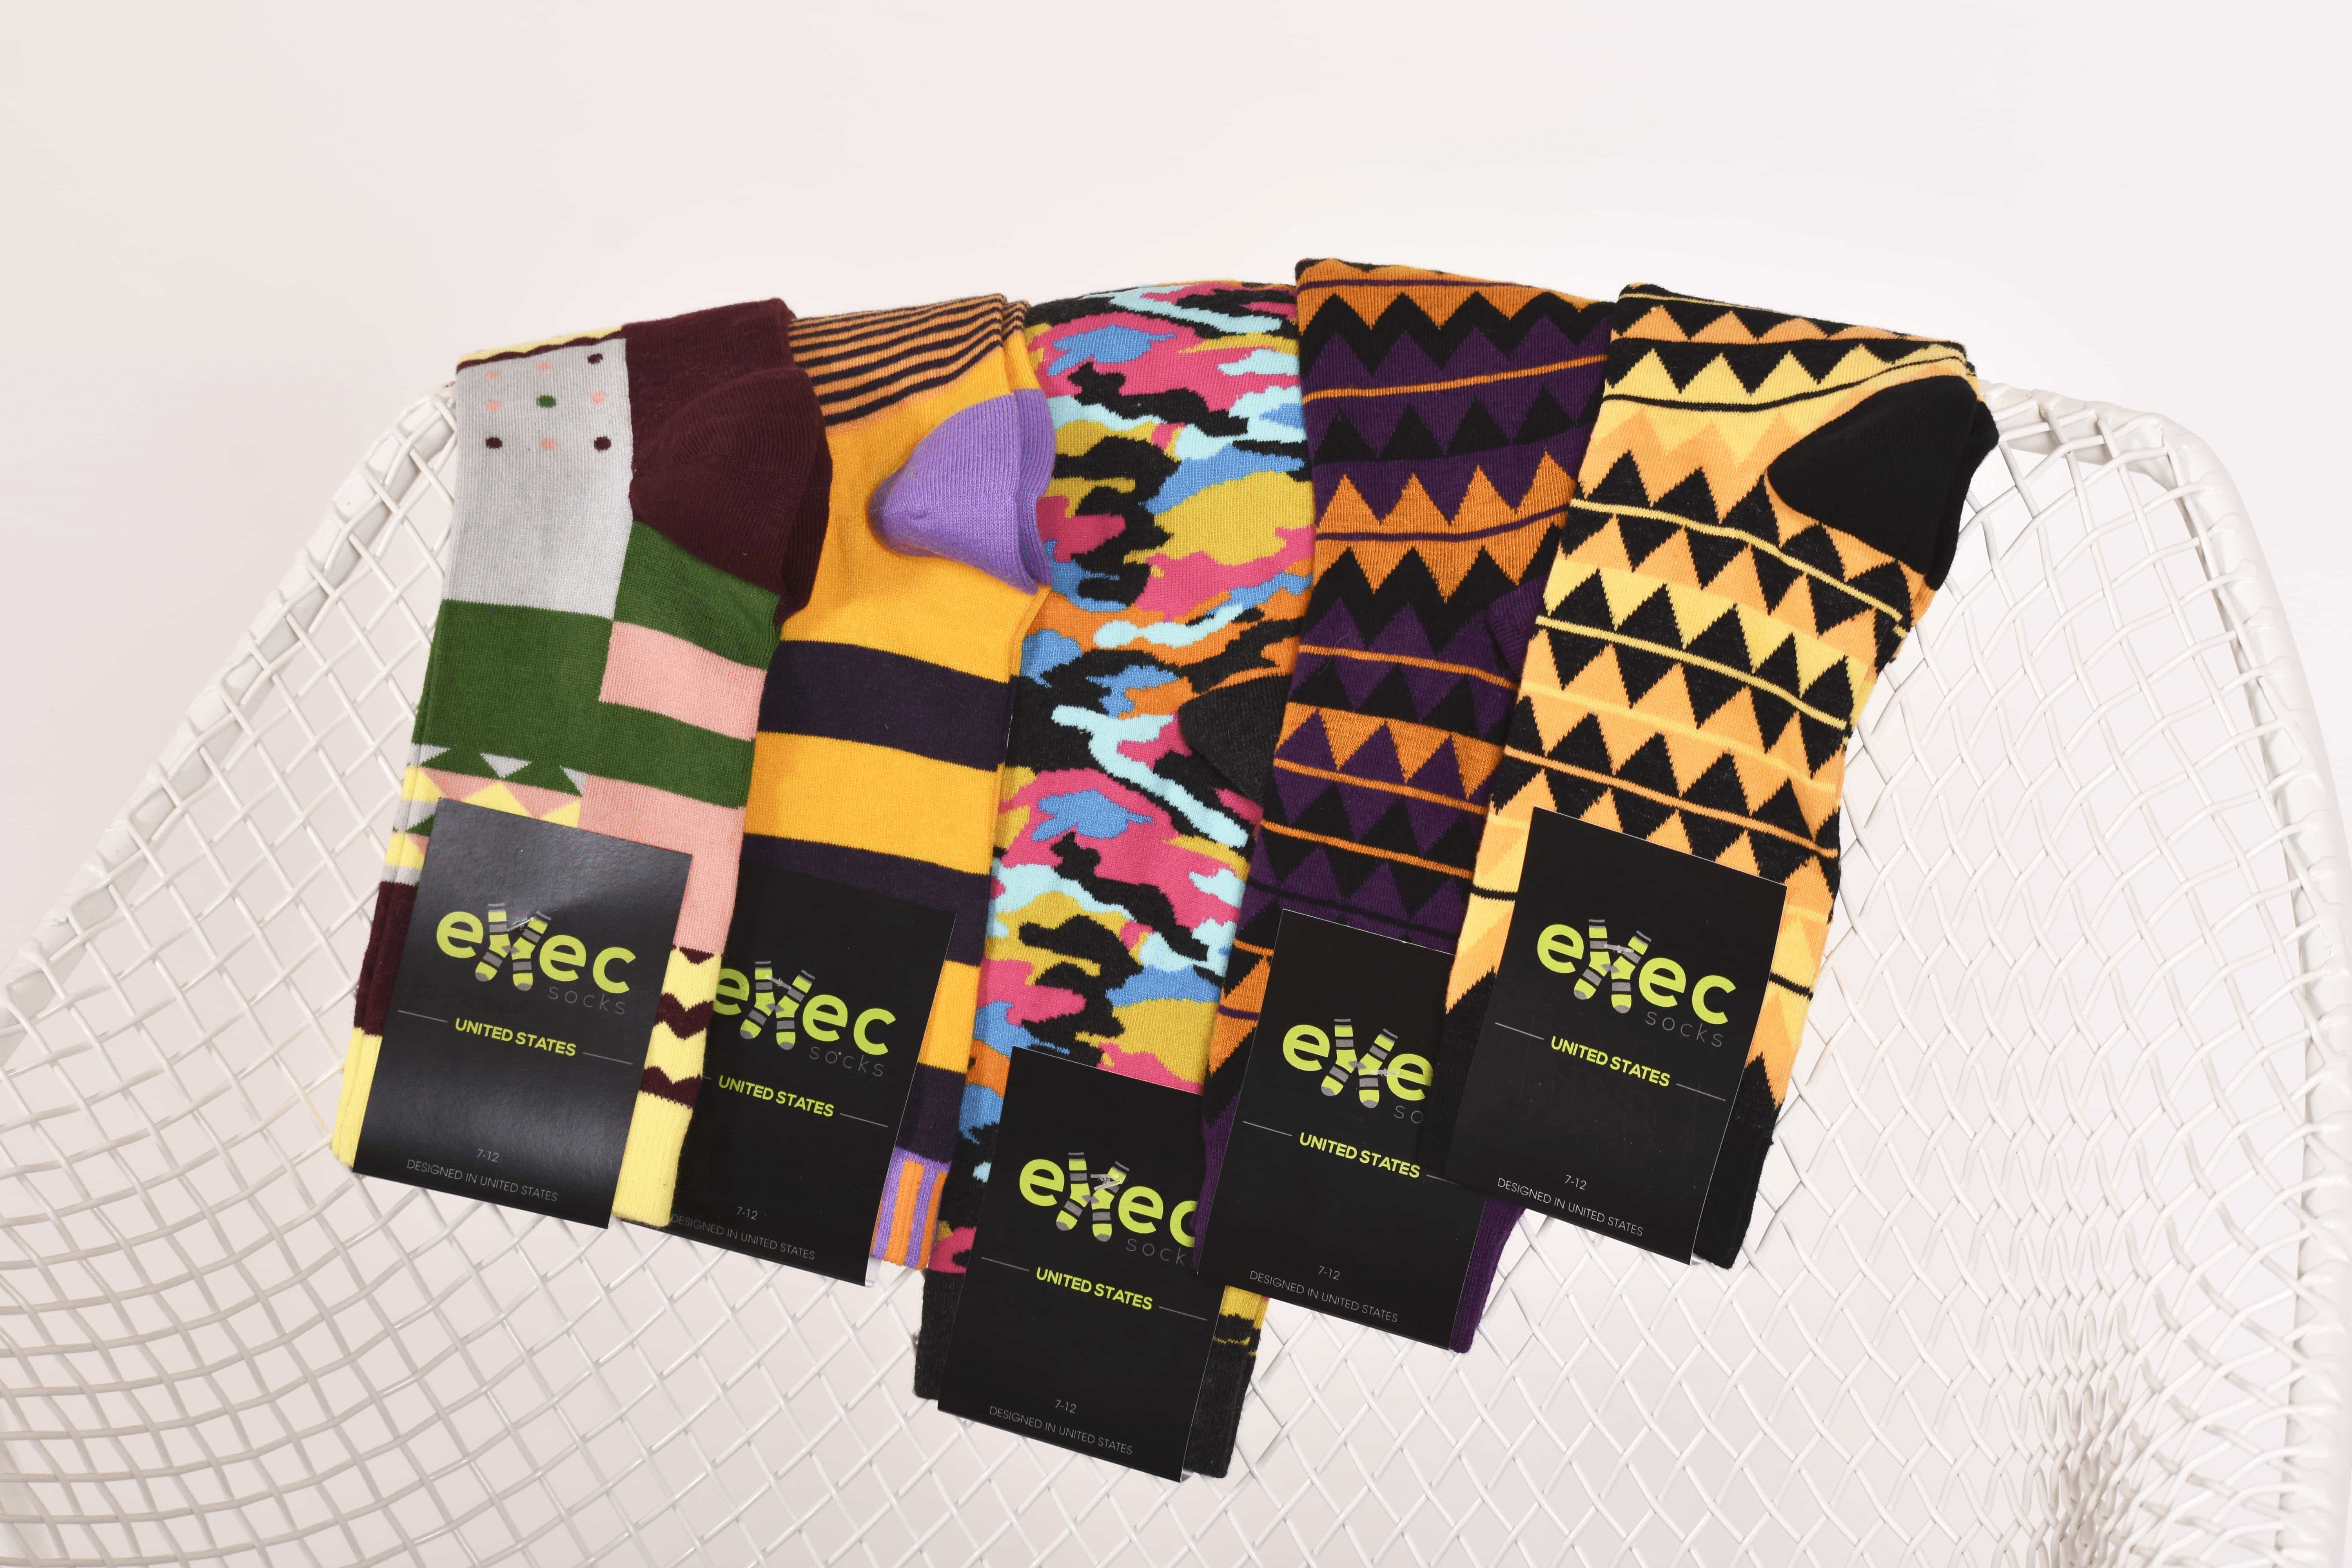 ExecSocks Black Friday 2017 Coupon: Take 25% Off For Life!